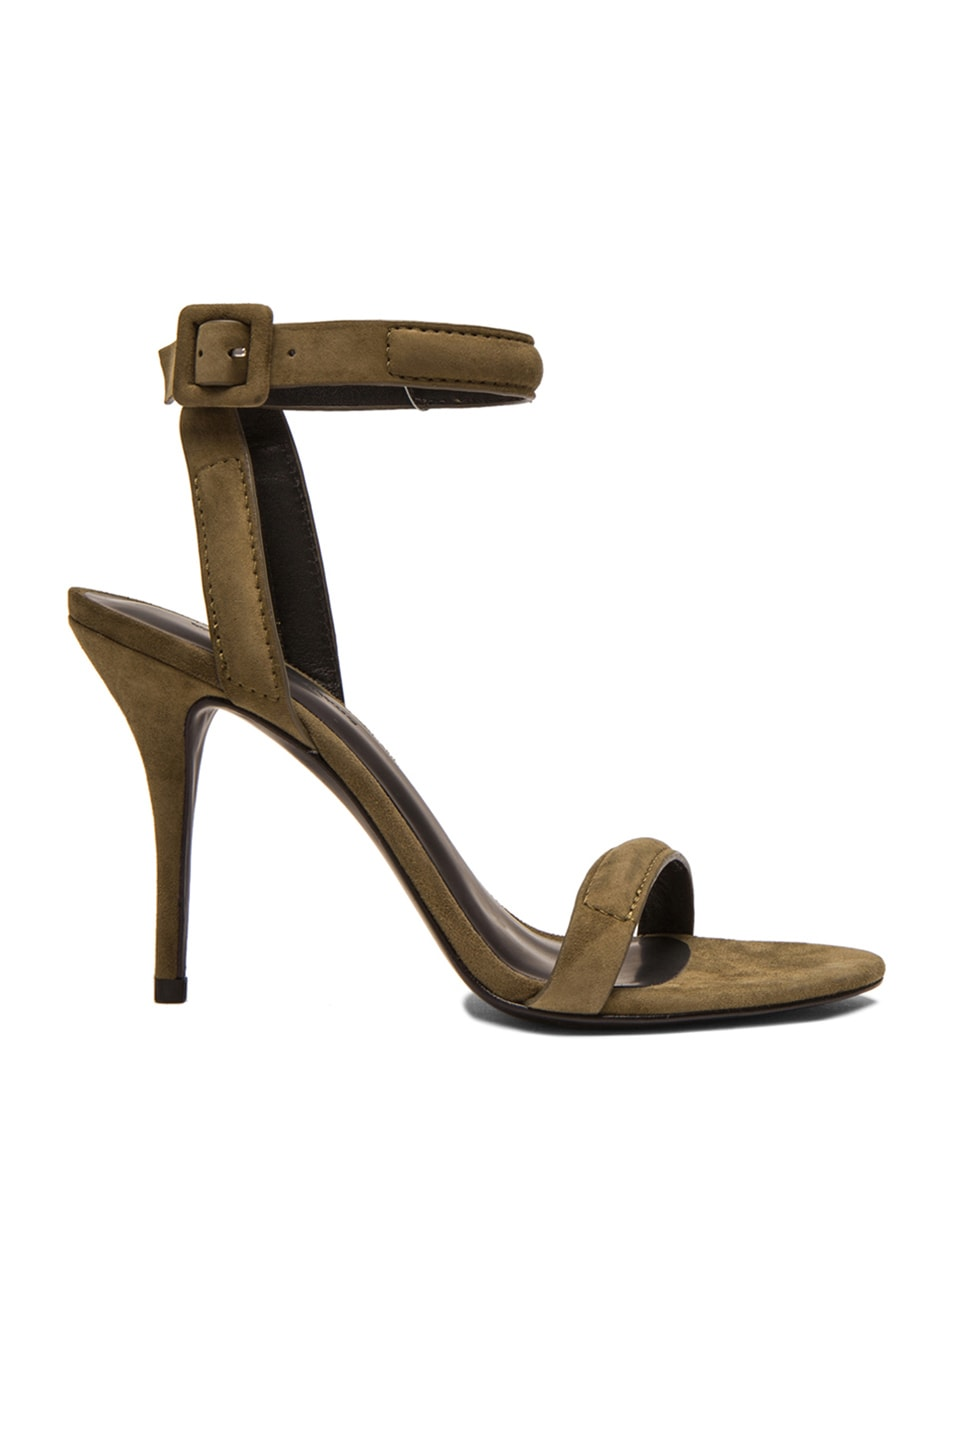 784c0aaf9e5f Image 1 of Alexander Wang Antonia Suede Ankle Strap Sandals in Camouflage